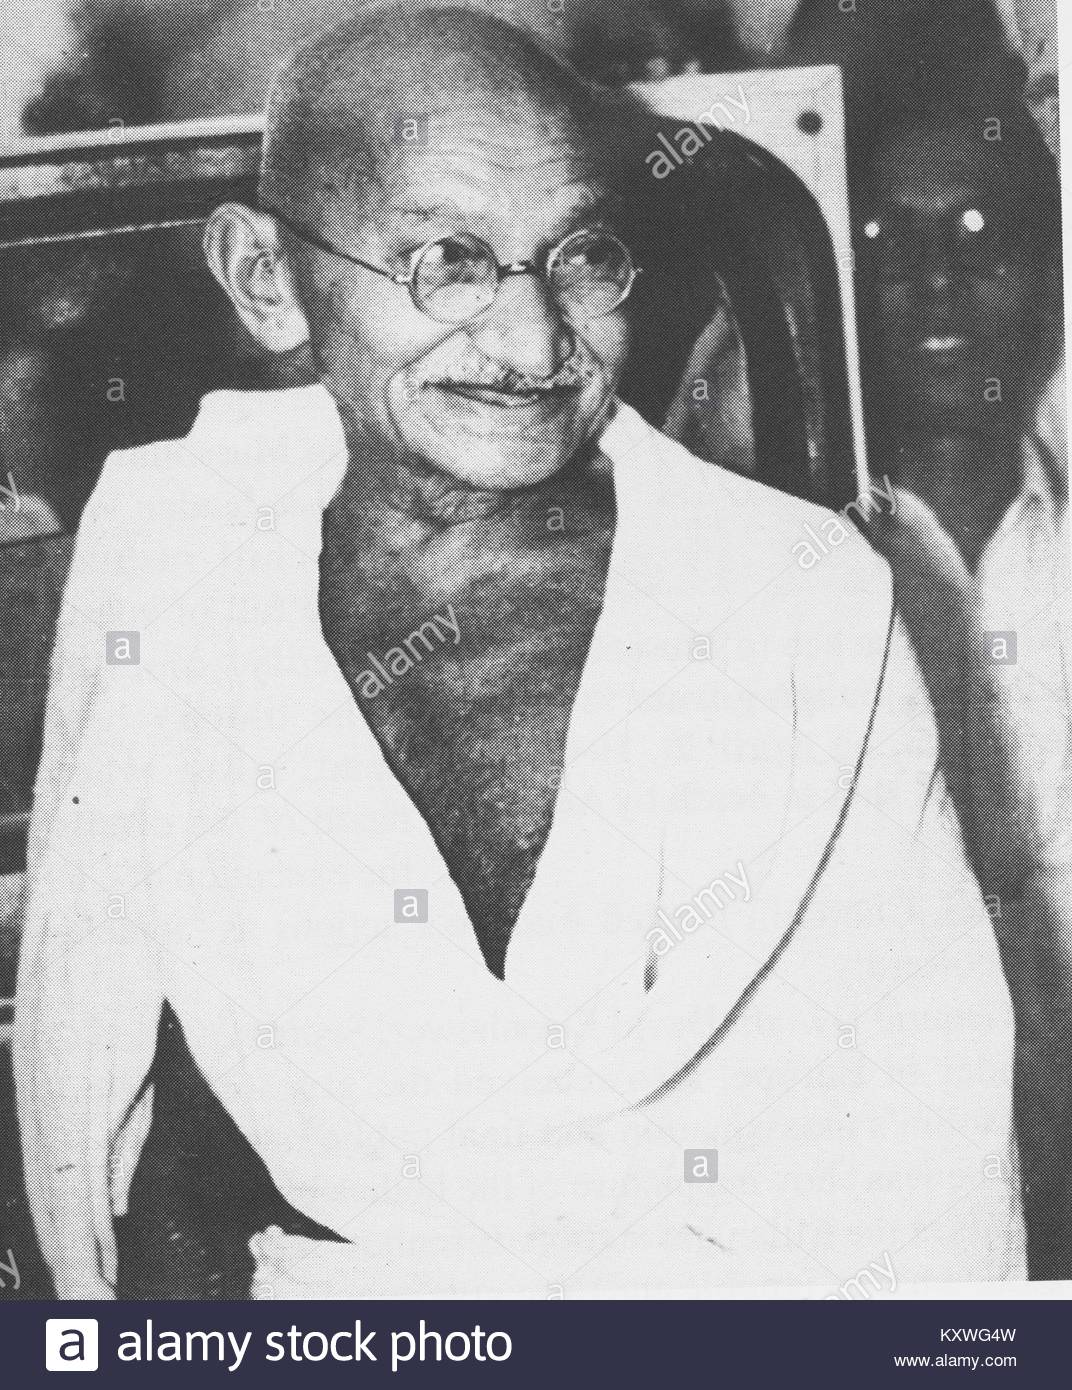 mahatma gandhi untouchabilty movement But during the national movement, mahatma gandhi made the eradication of un-touchability one of his goals he had once said that the way 'untouchability' was spreading in the hindu society, it was against both the man and the god.